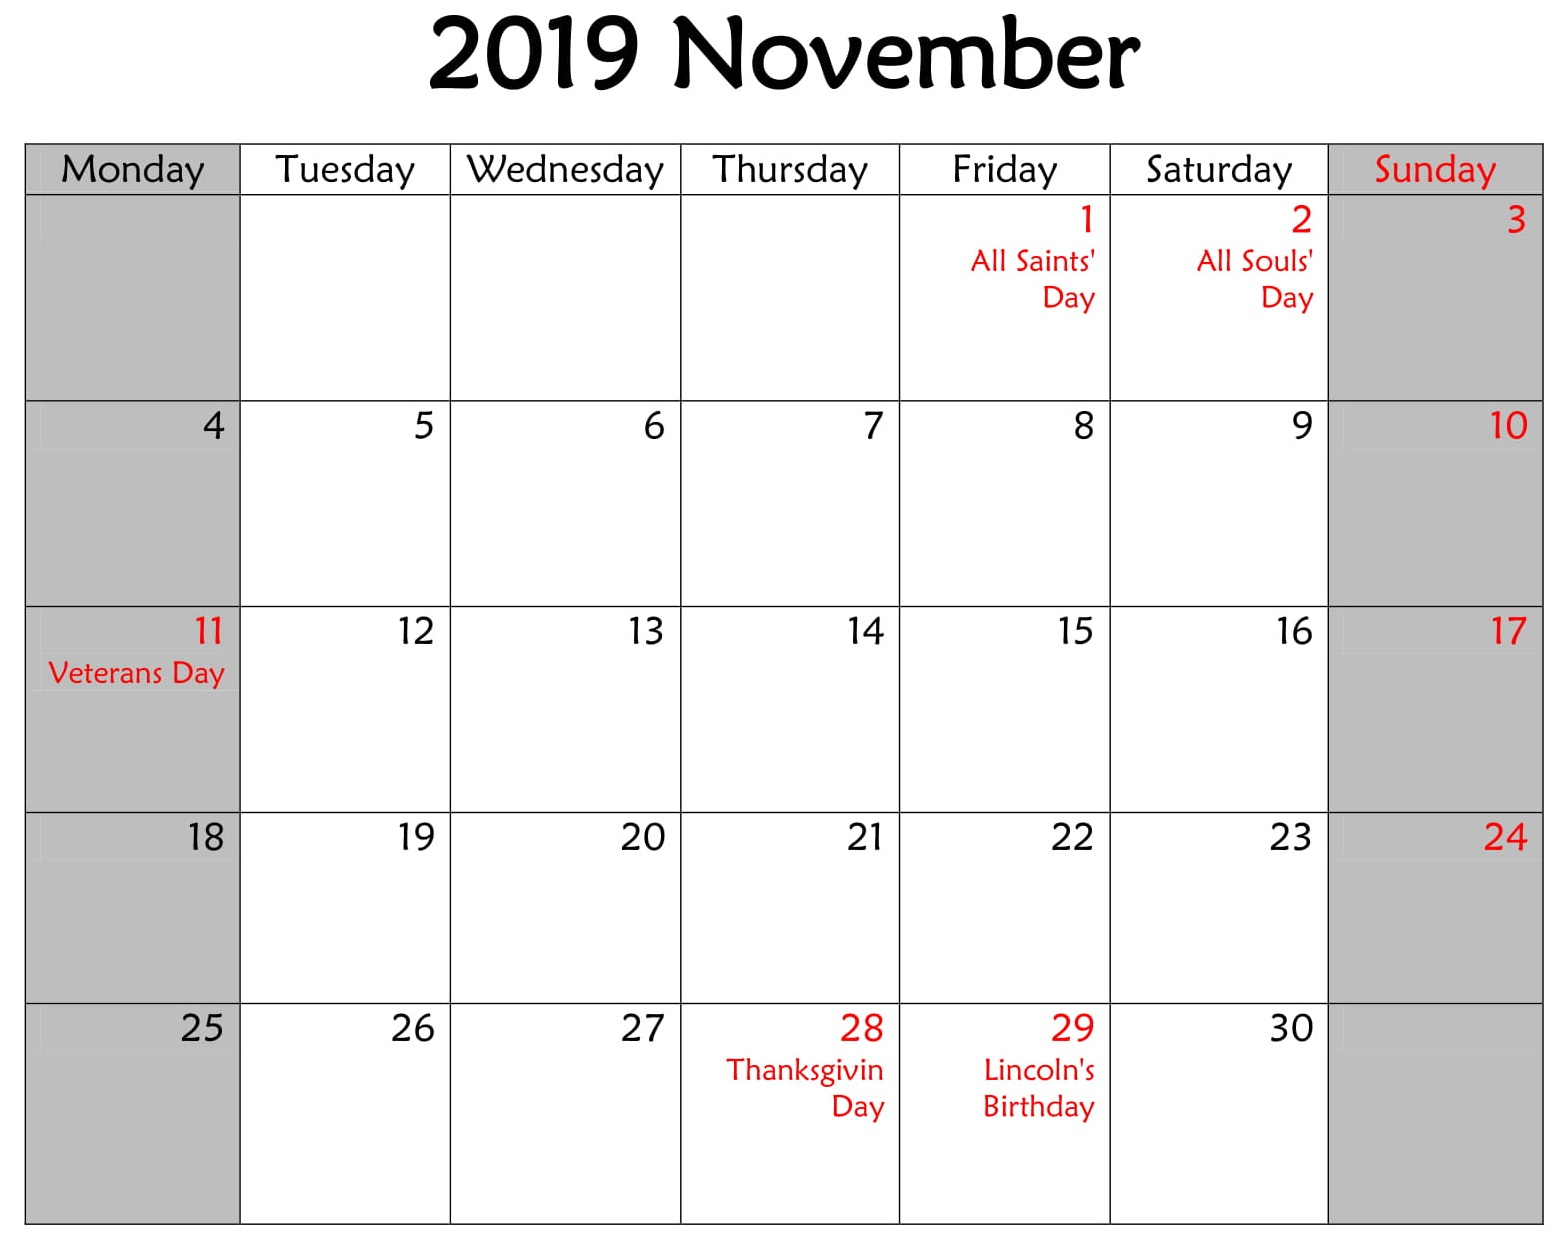 November 2019 Monthly Calendar with Holidays